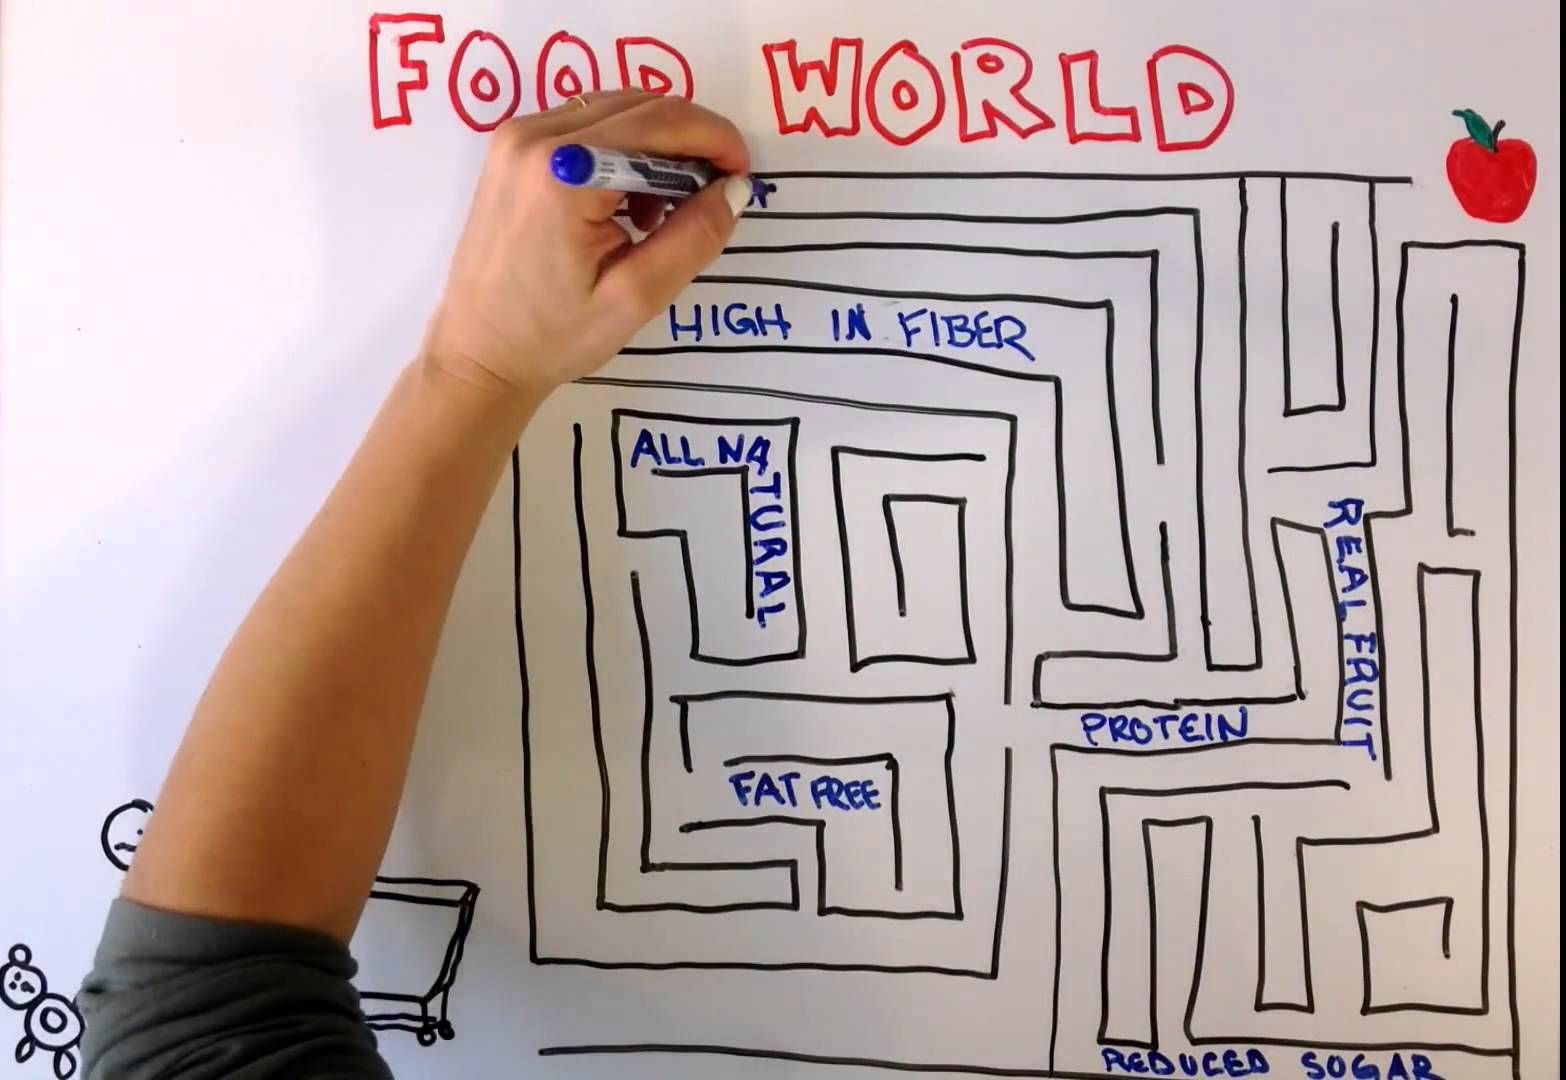 Of course we make the decisions about what to eat and feed our ...